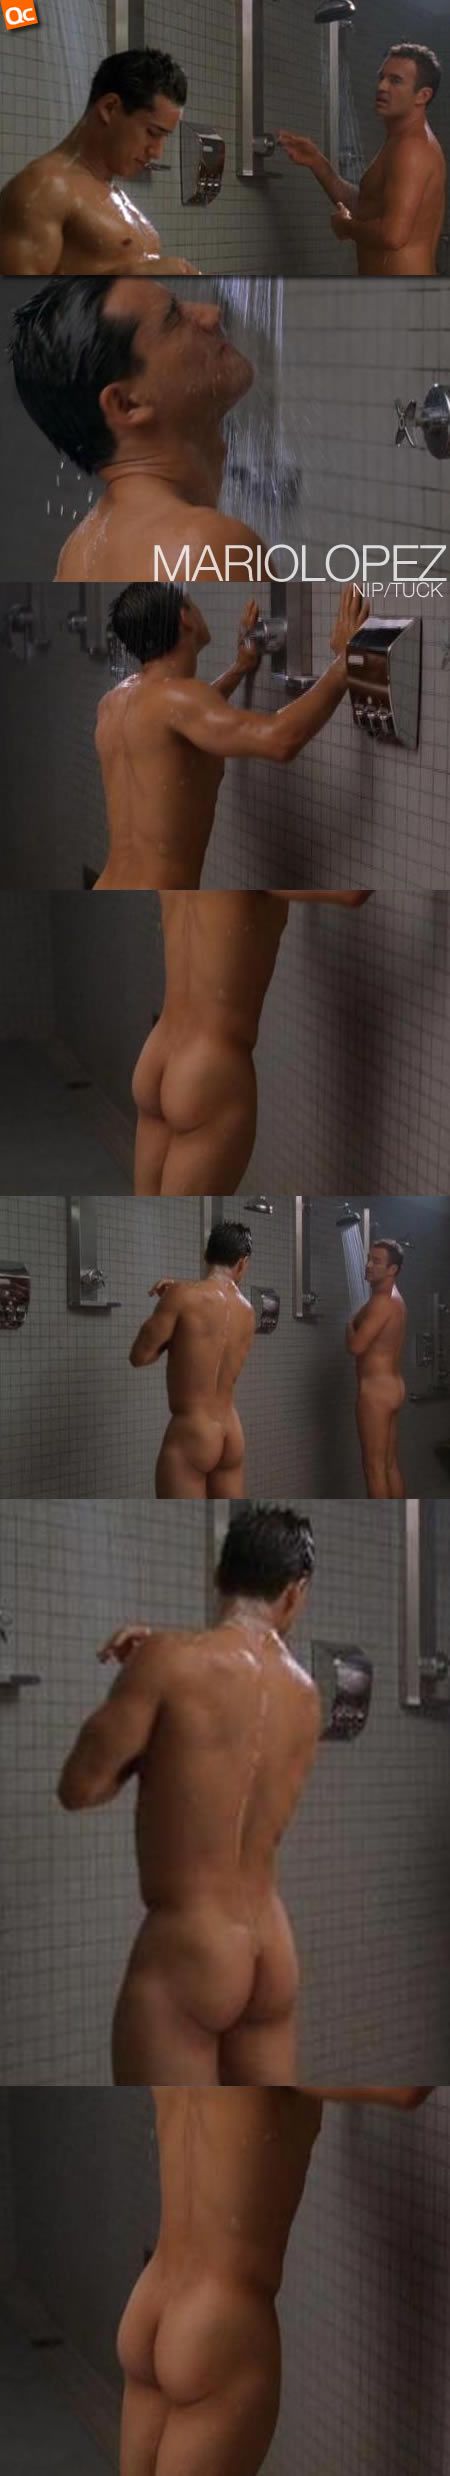 Mario lopez naked shower